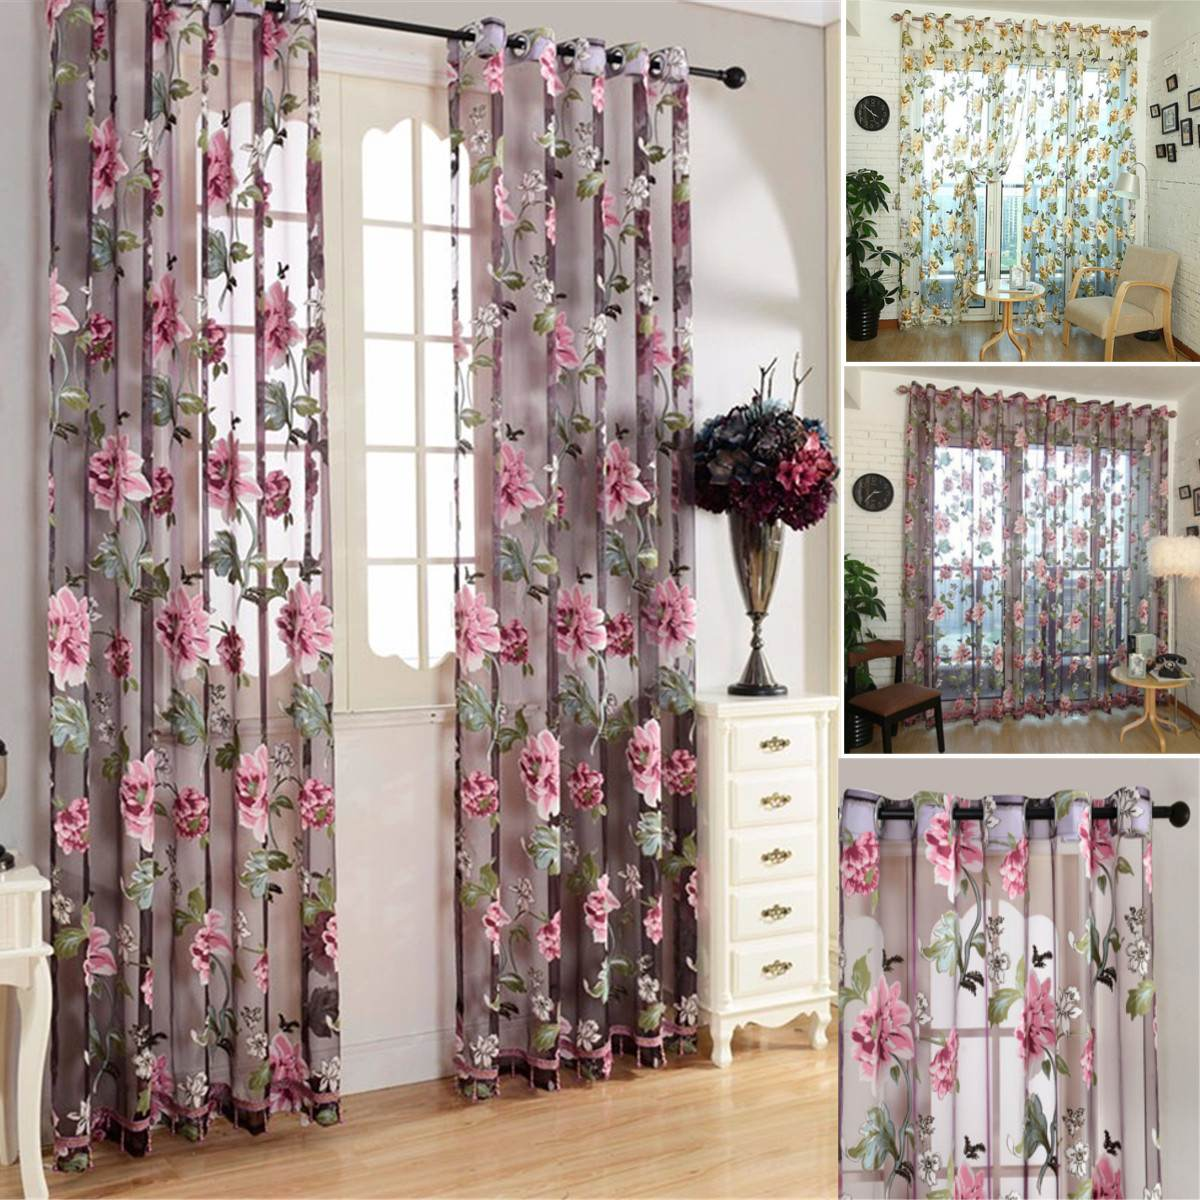 1 Panel Window Sheer Curtain 100x200cm Floral Pattern Window Curtains Valance Home Living Room Bedroom Decoration 2 Colors